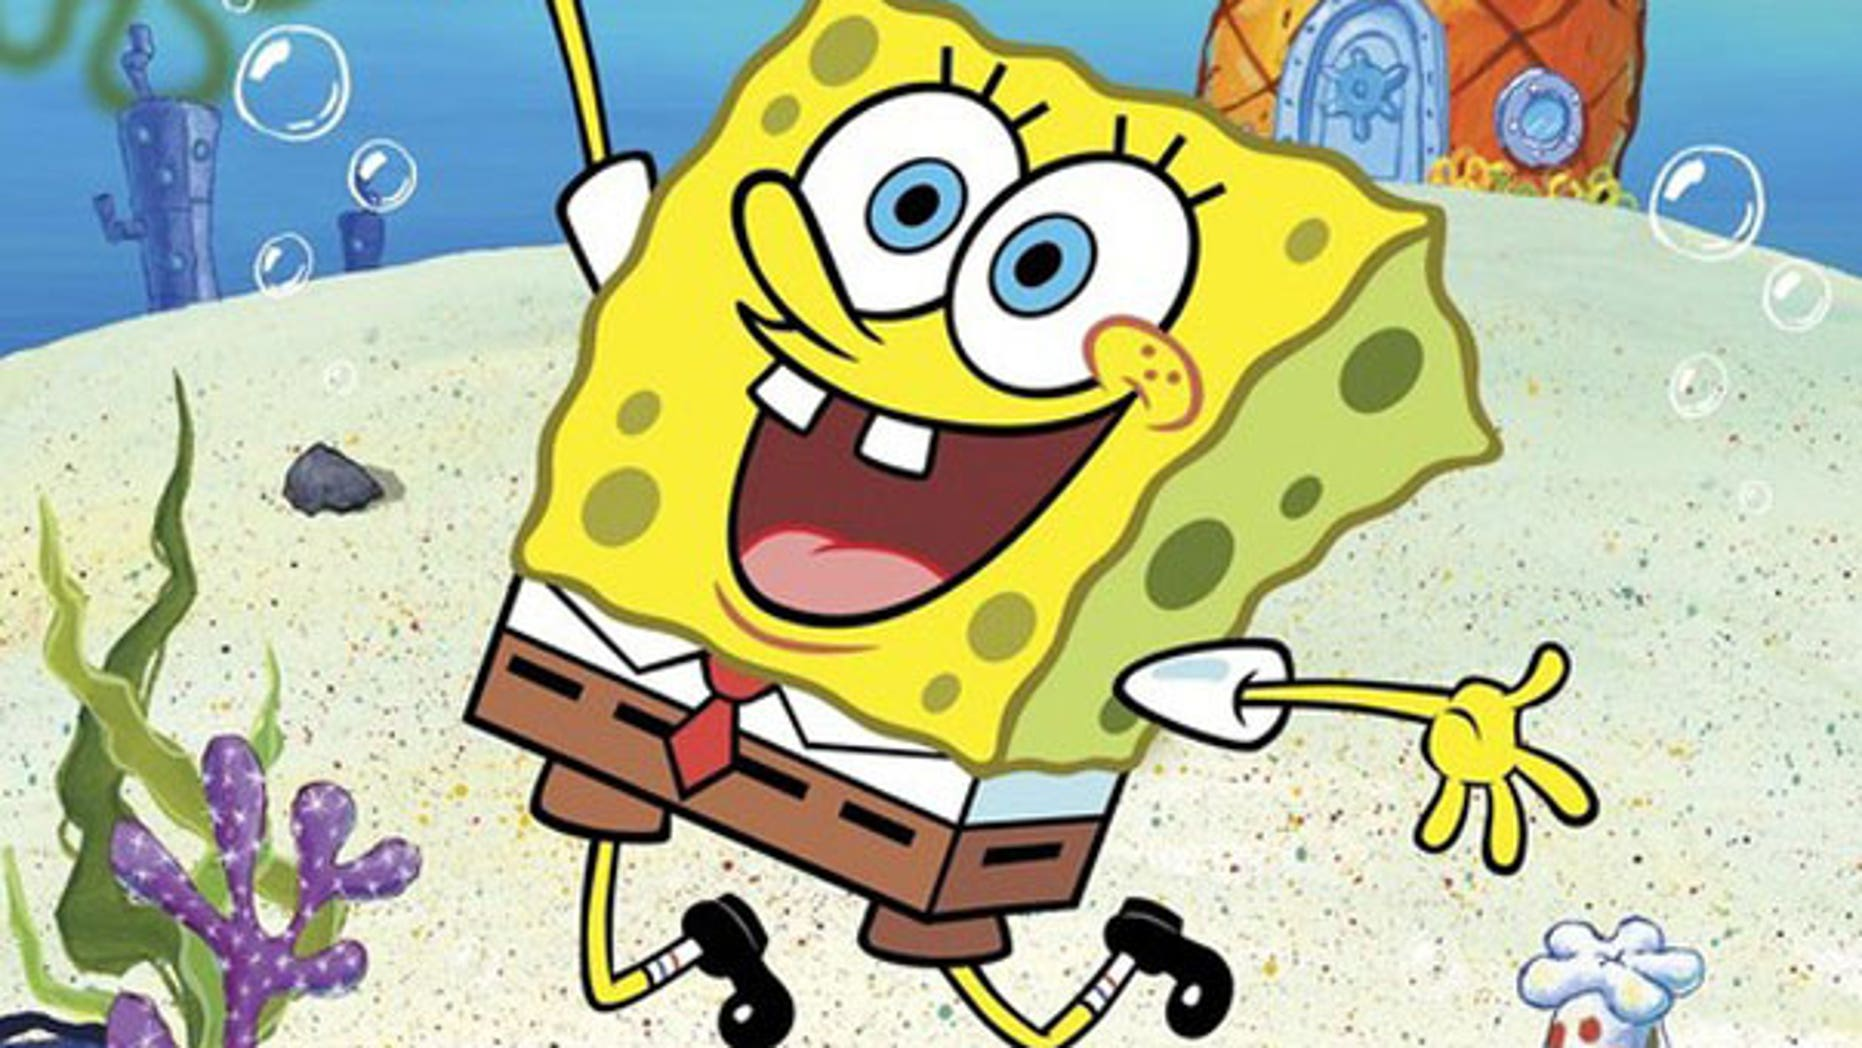 watching spongebob can lead to learning problems? | fox news